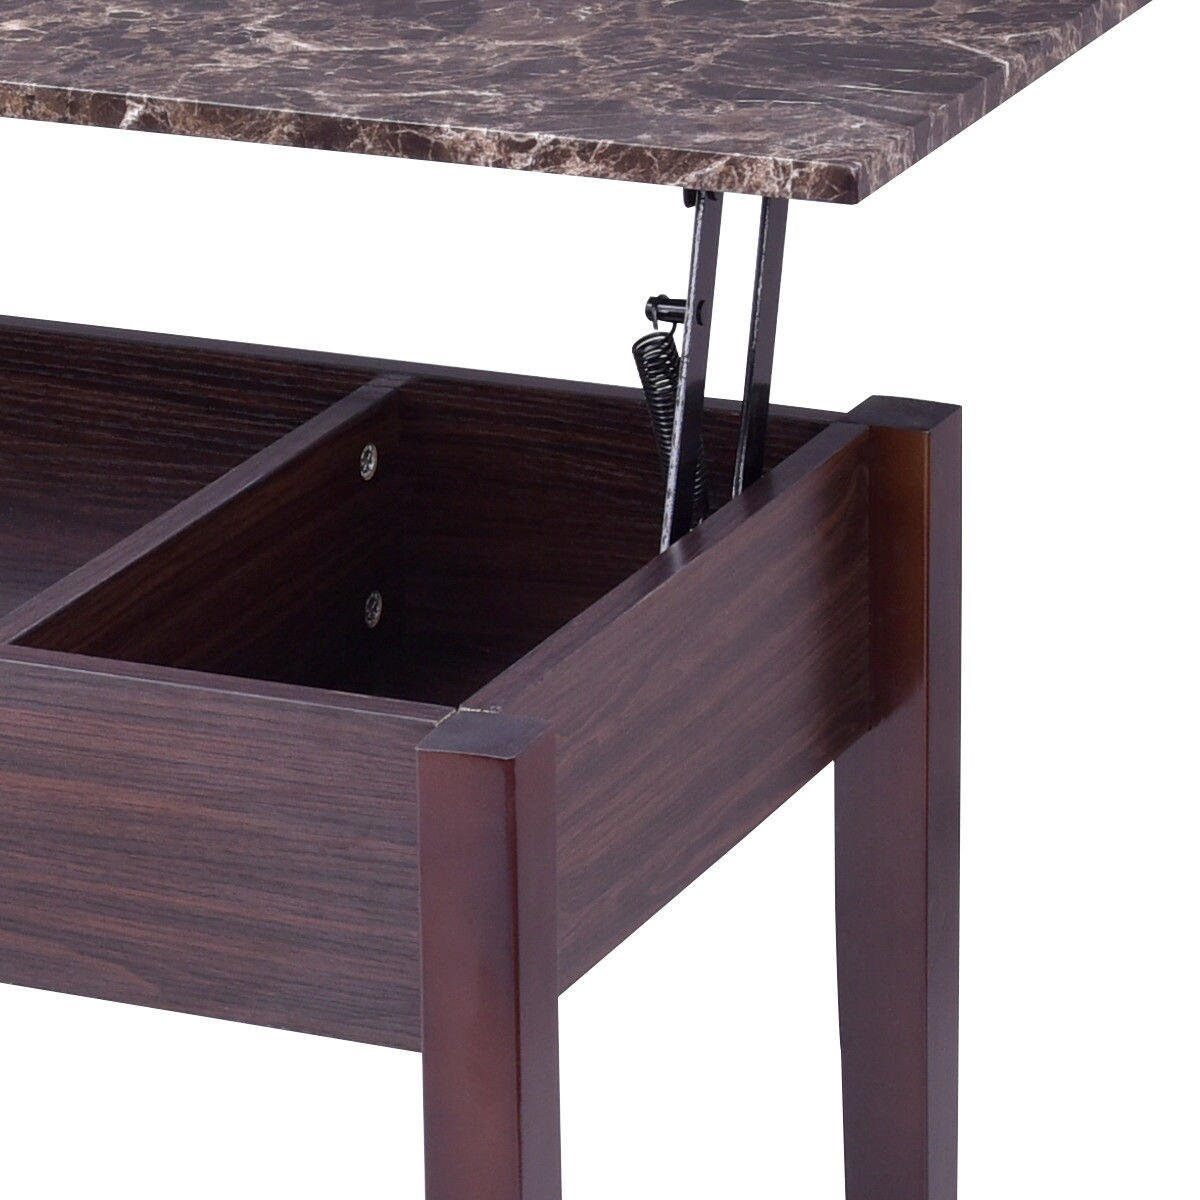 Costway Faux Marble Lift Top Coffee Table W Hidden Storage Compartment Solid Wood Legs As Pic Free Shipping Today 20476007